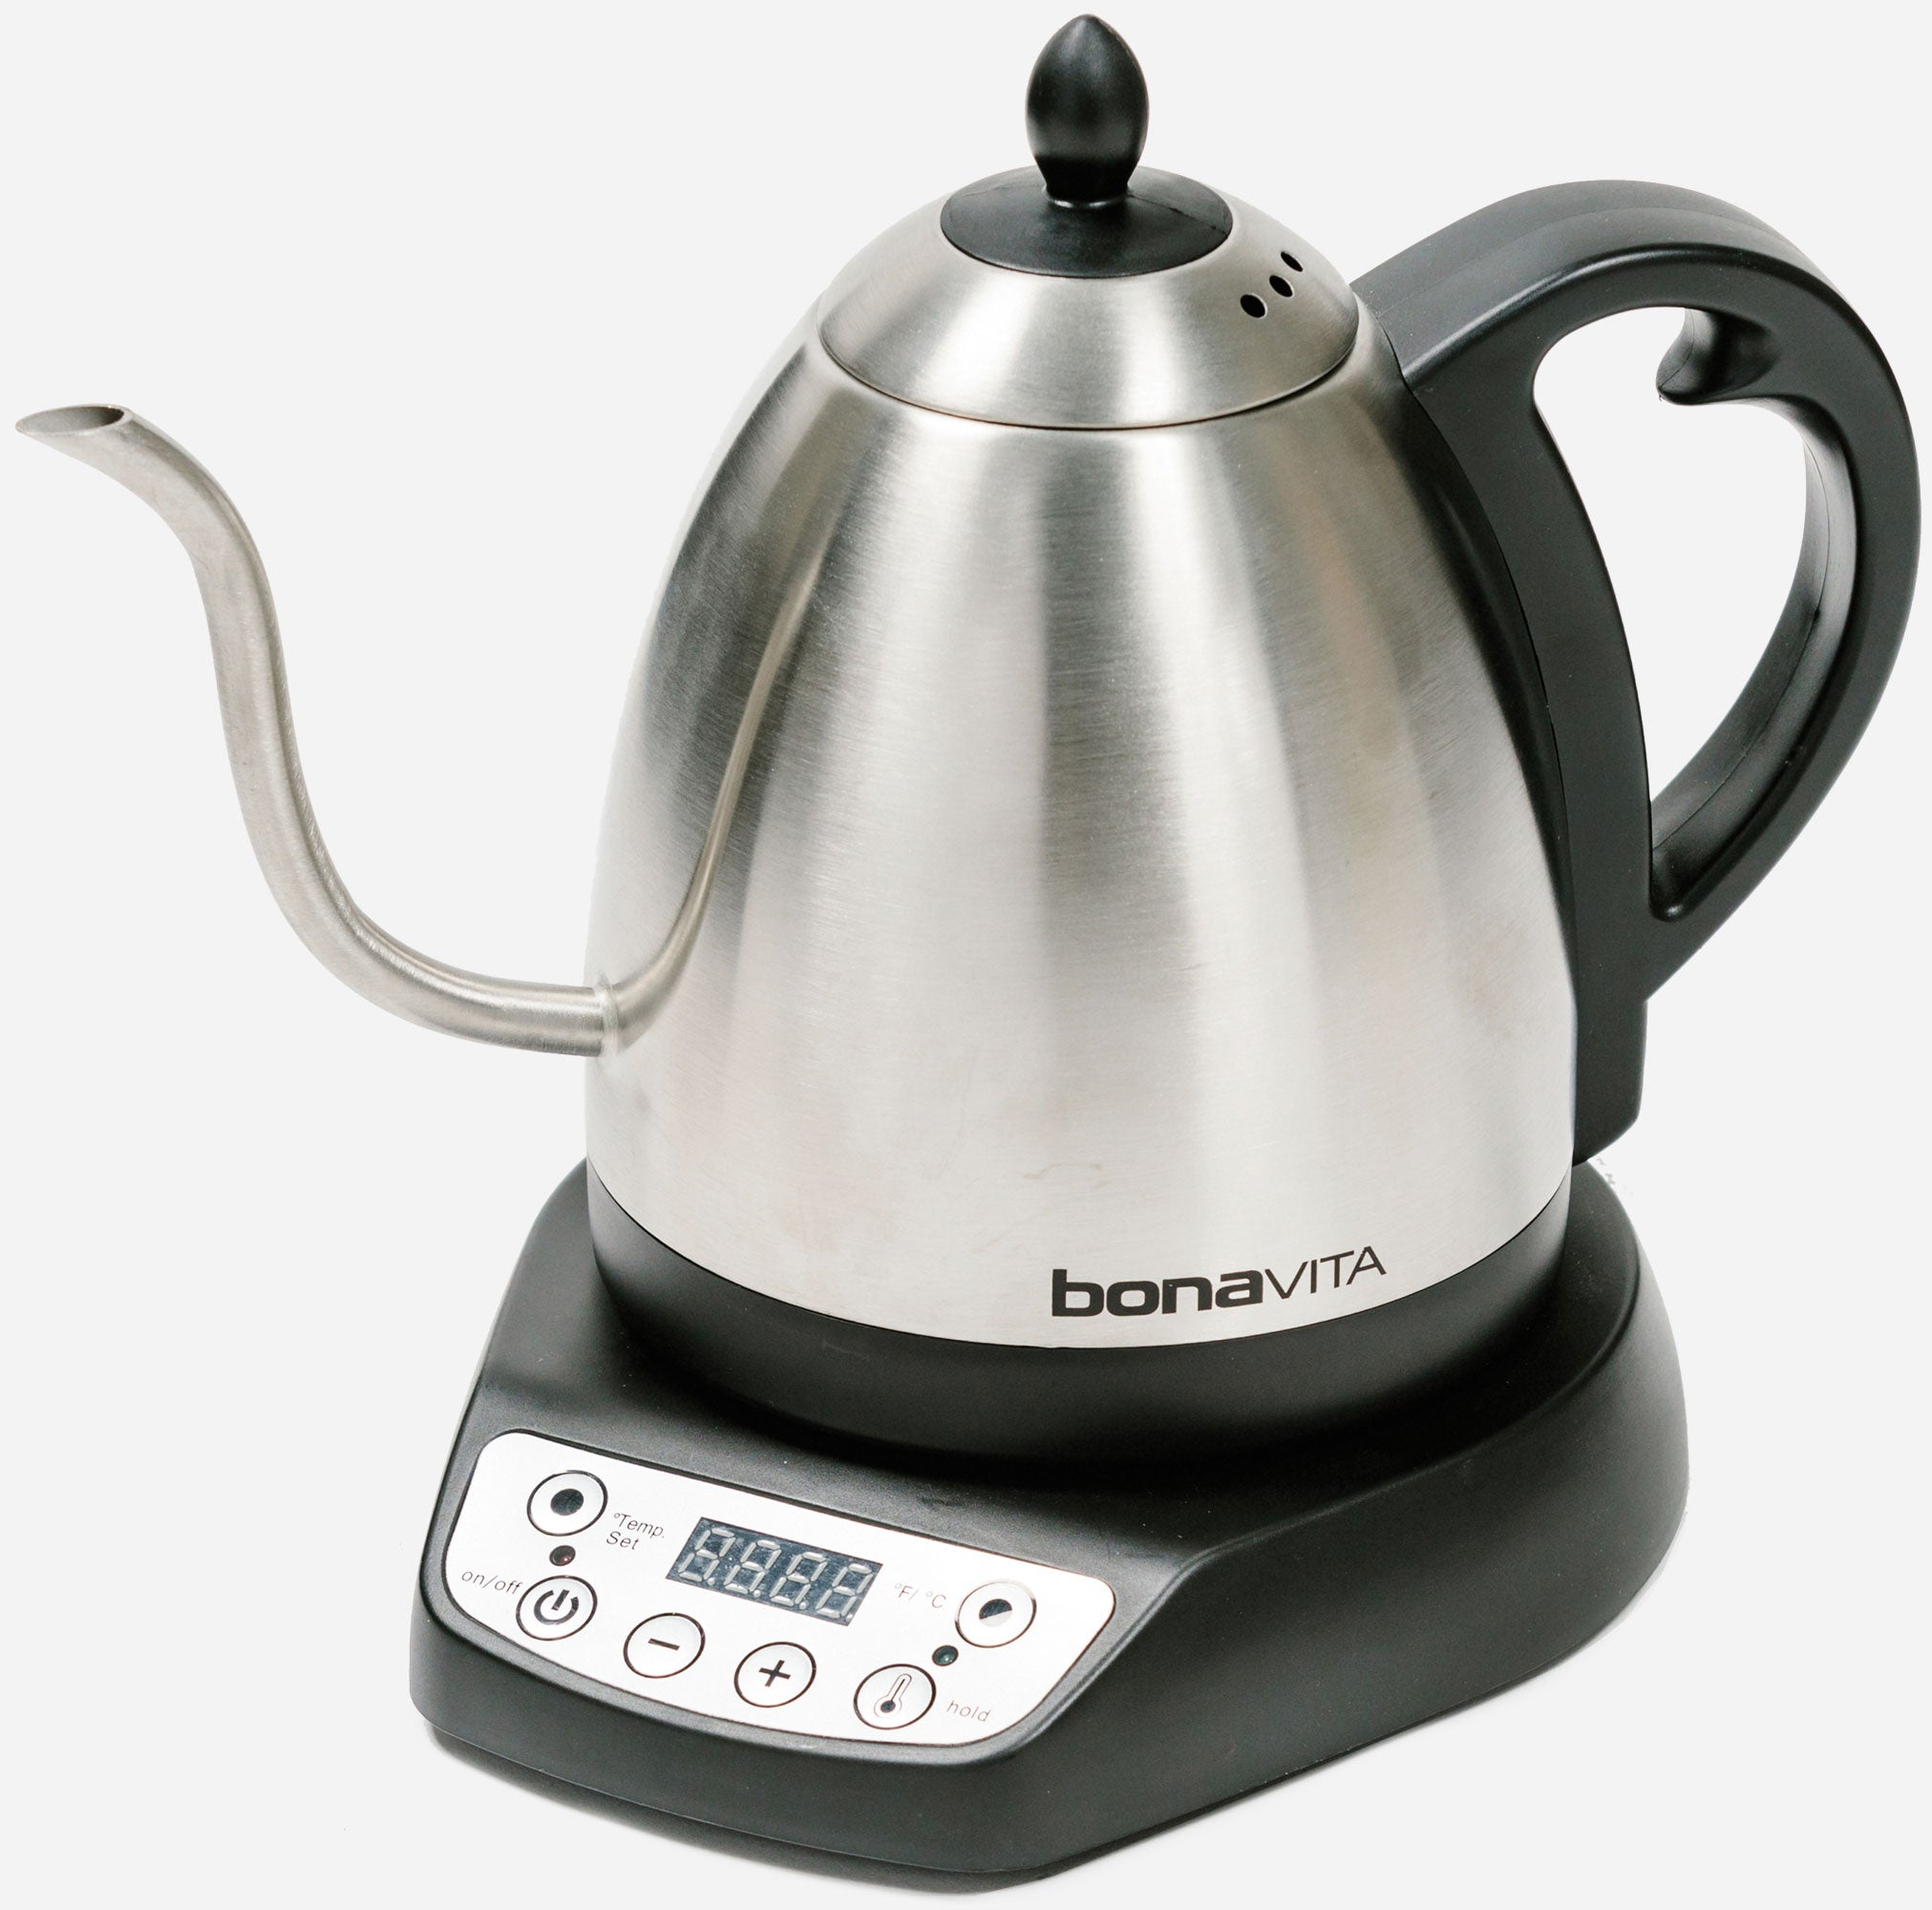 Bonavita 1 Litre - Non Variable Electric Gooseneck Kettle